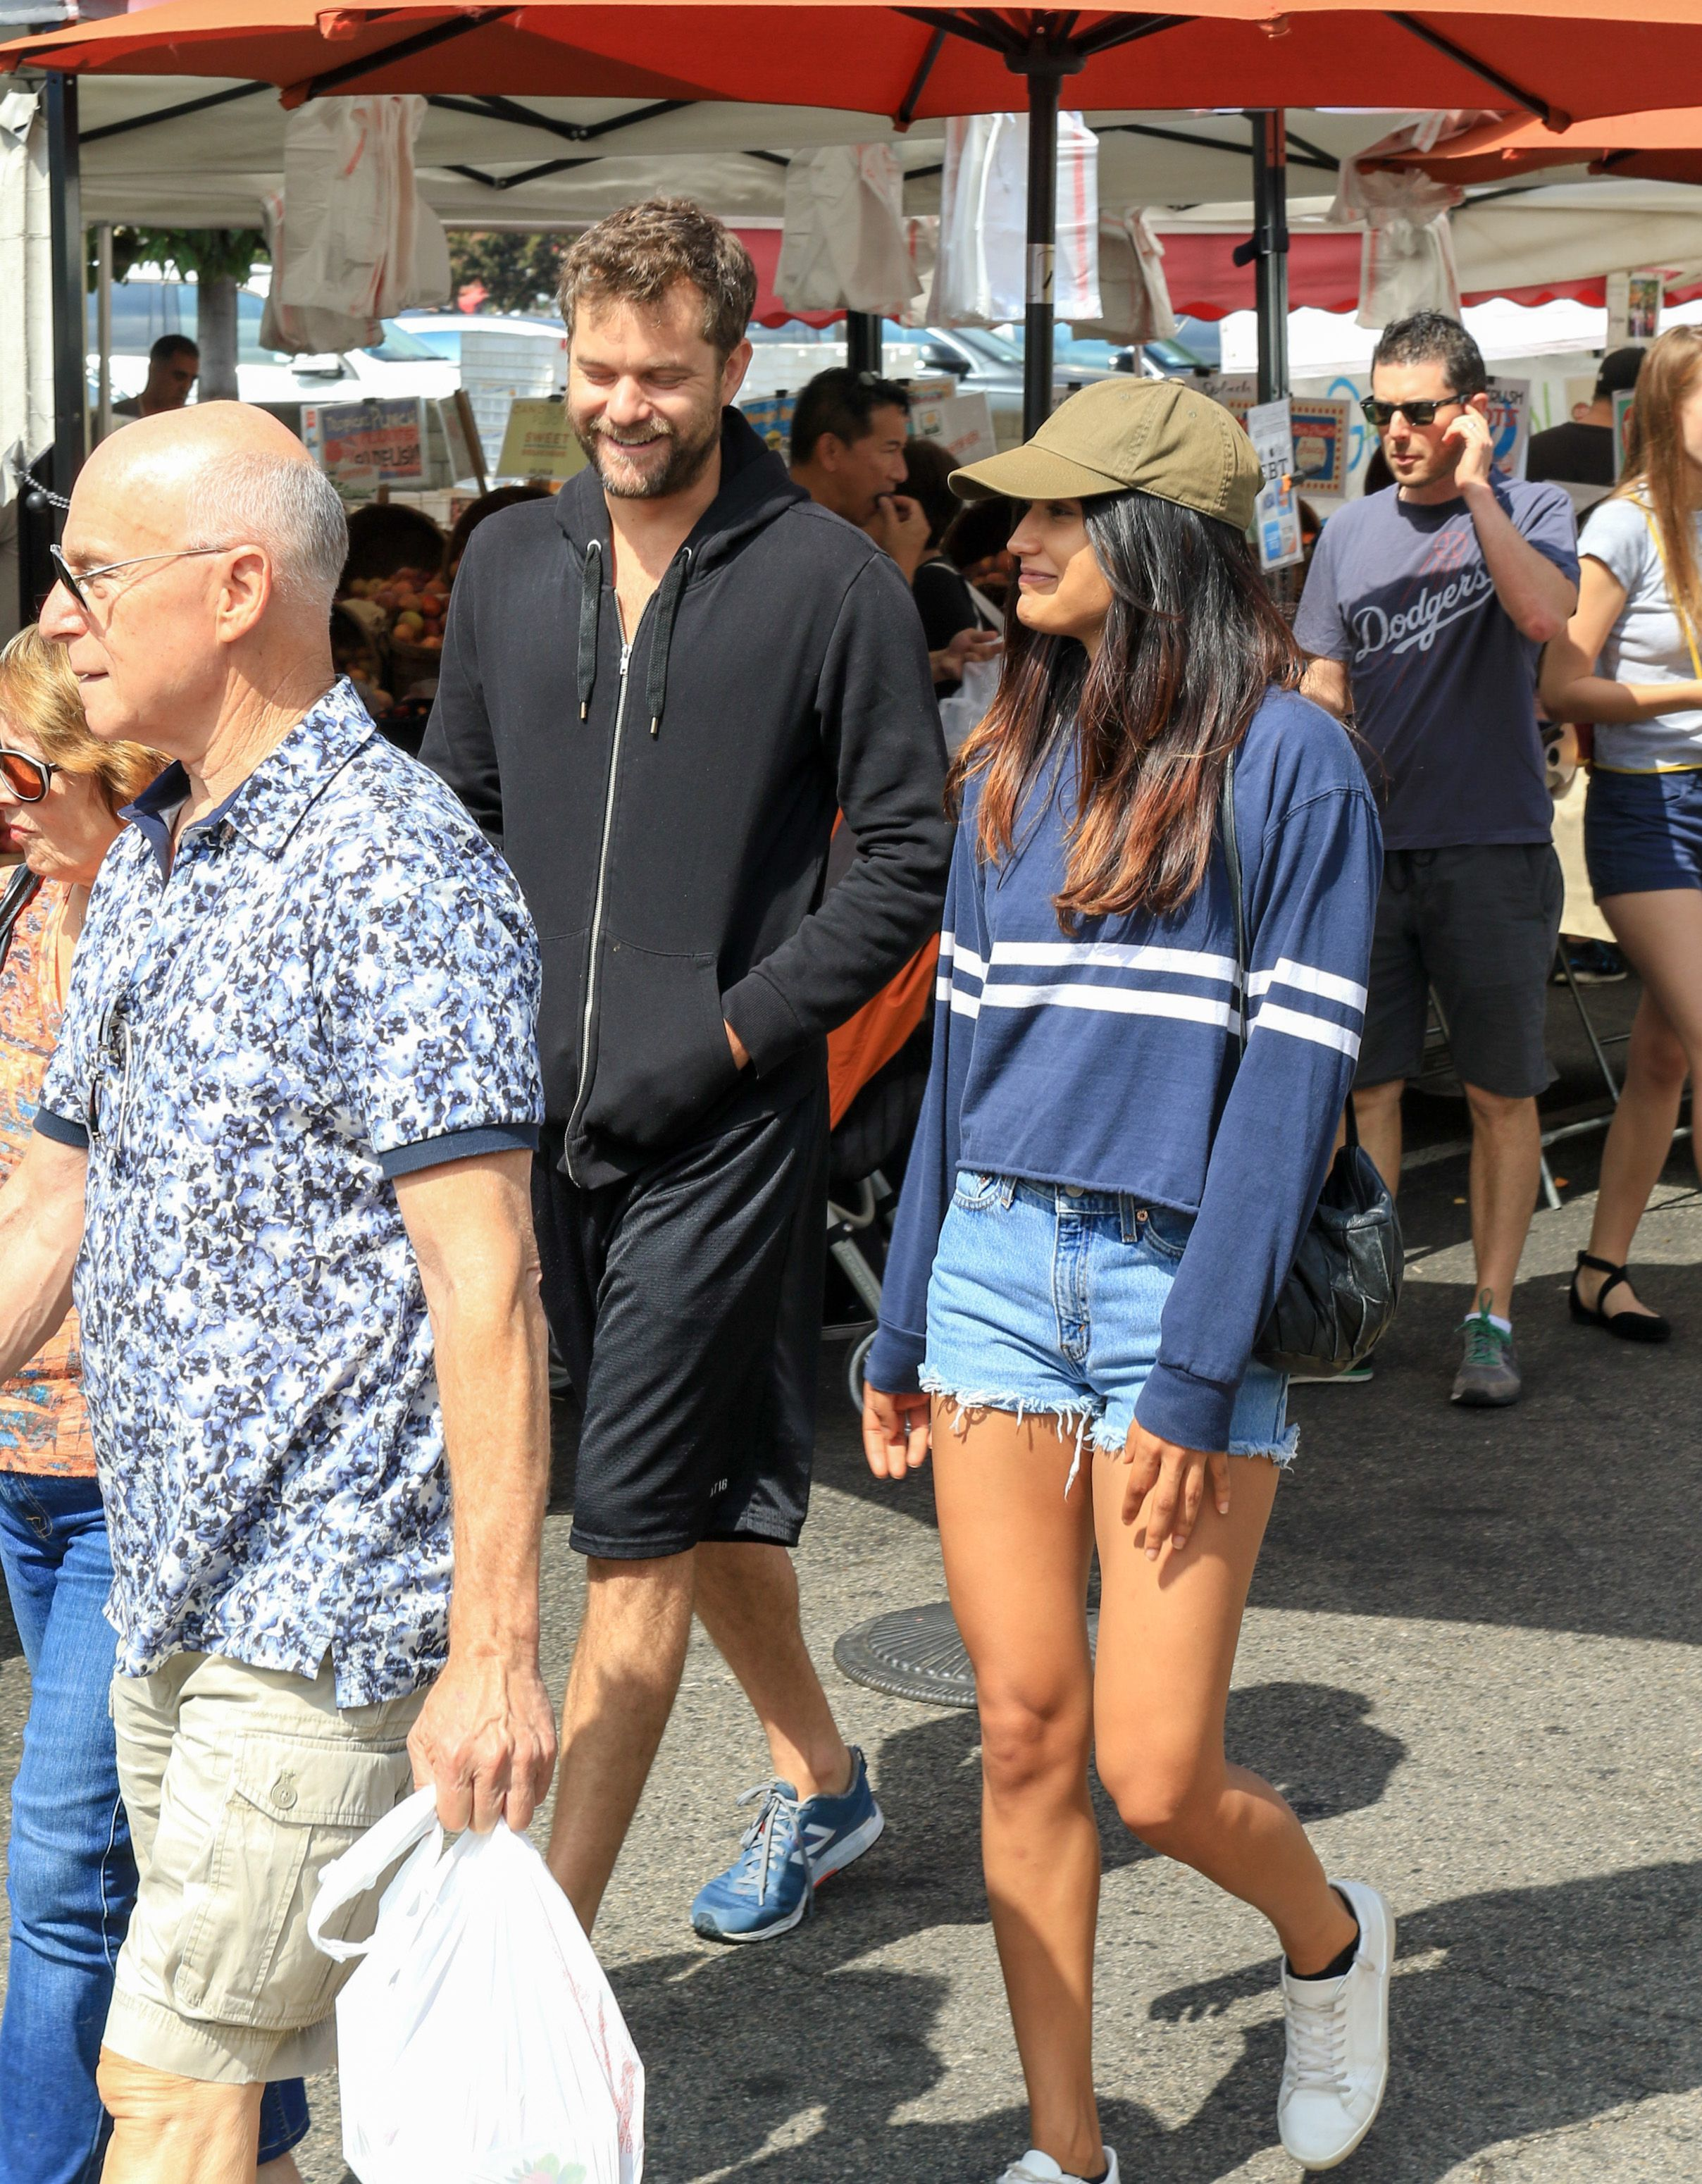 Joshua Jackson steps out with Shafia West in Los Angeles on Aug. 20, 2017.